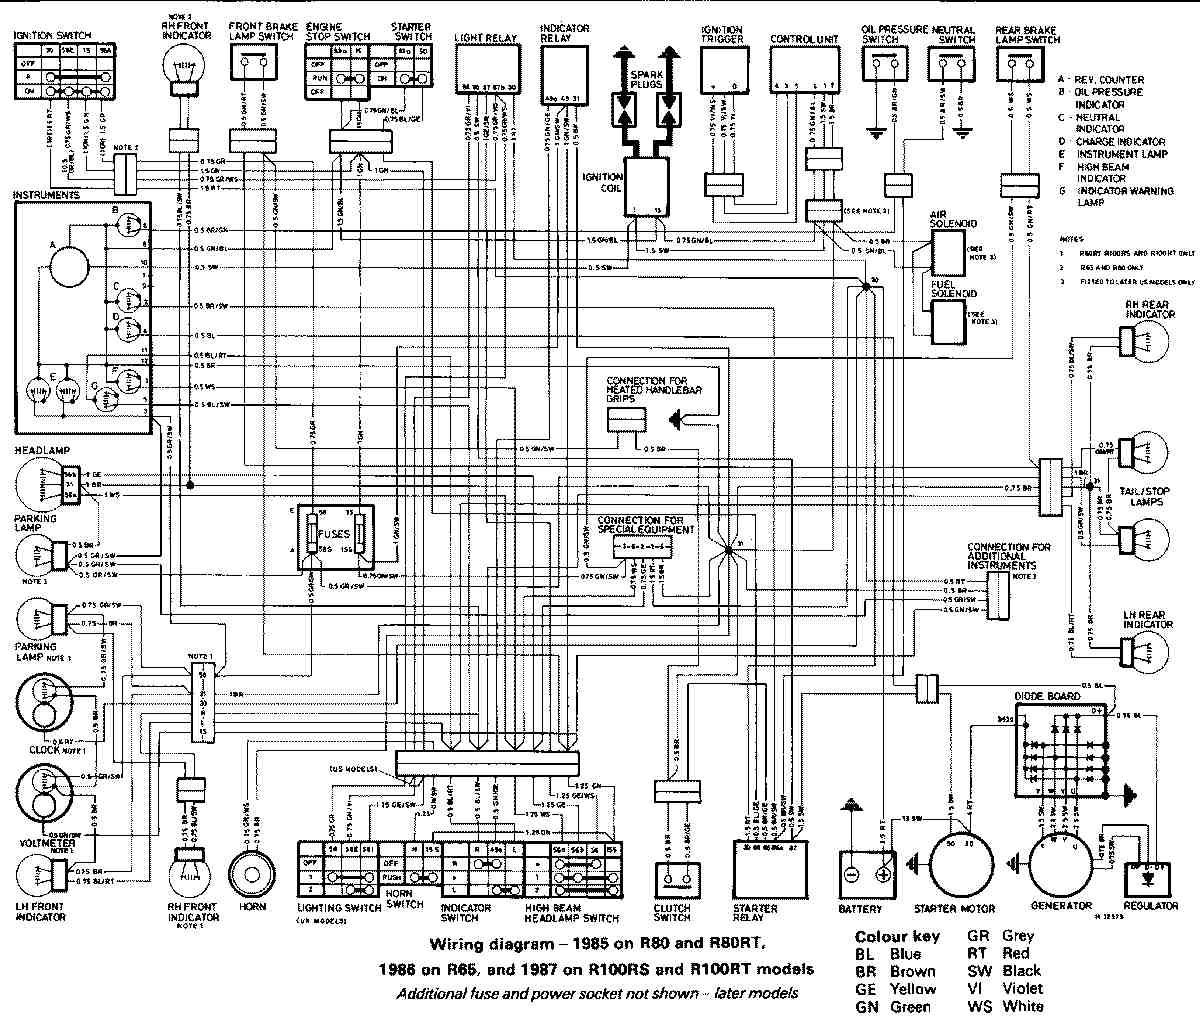 1980 Corvette Radio Wiring Diagram also Horn Wiring Diagram Without Relay moreover Chevrolet Hhr 2006 Front Engine Fuse Boxblock Circuit Breaker Diagram together with Watch additionally Peugeot wiring diagrams. on chevy horn diagram